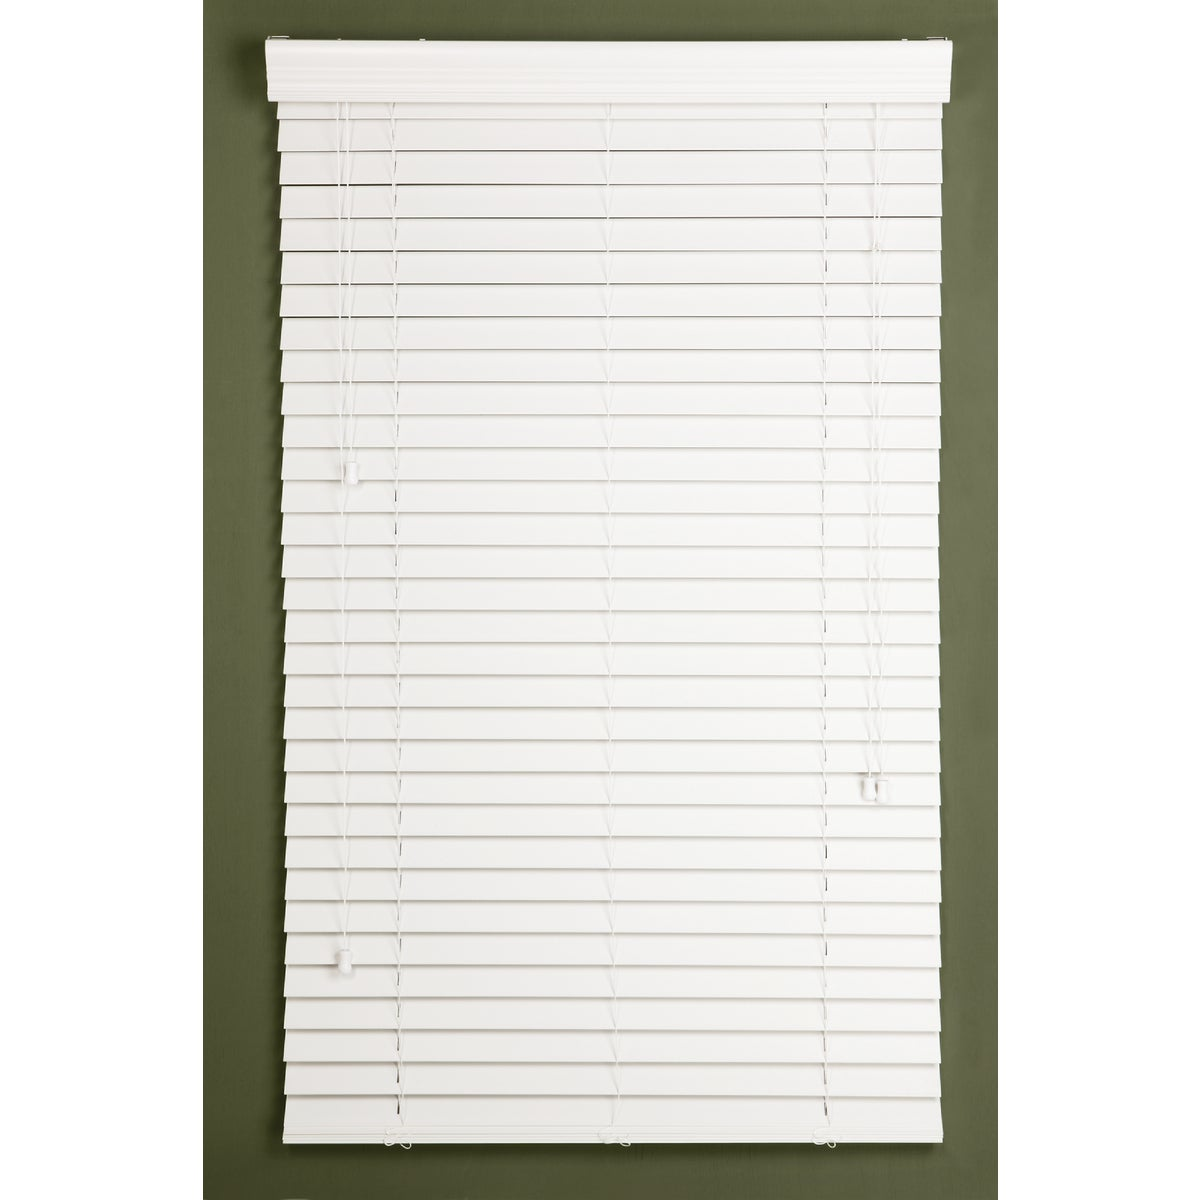 35X64 WHITE FAUX BLIND - 628137 by Lotus Wind Incom